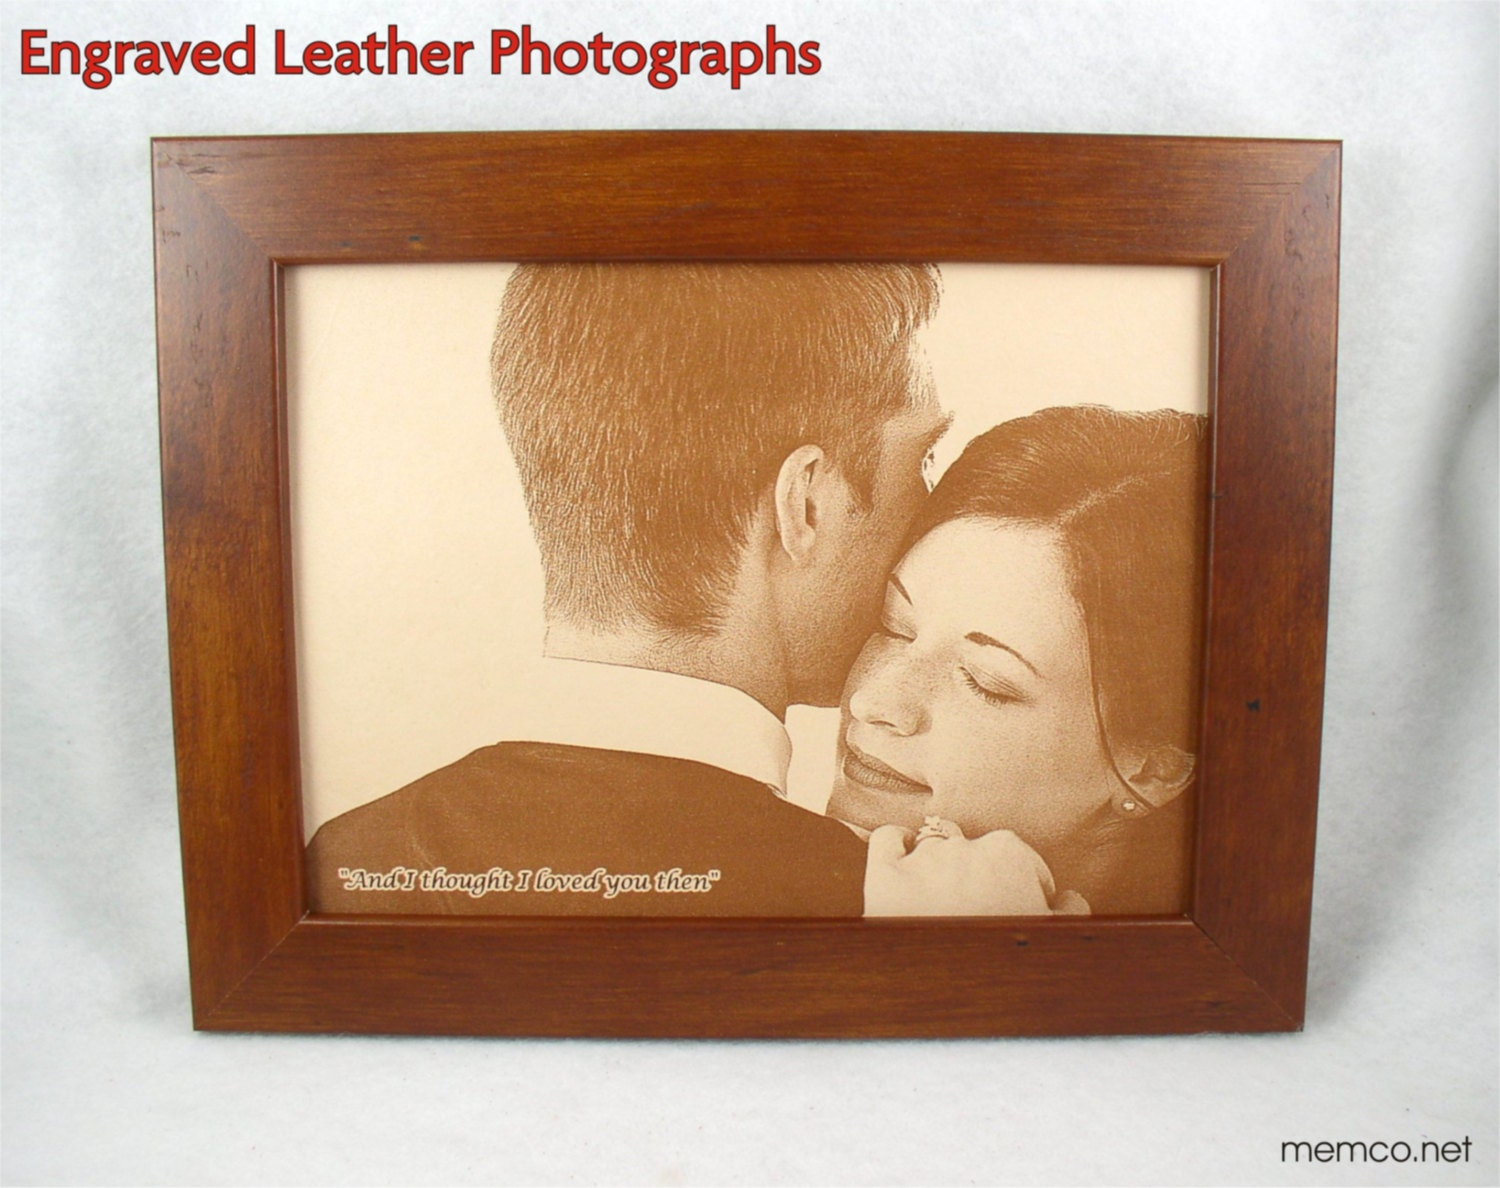 What Is 3rd Wedding Anniversary Gift: Photo Engraved In REAL LEATHER Third Anniversary Wedding